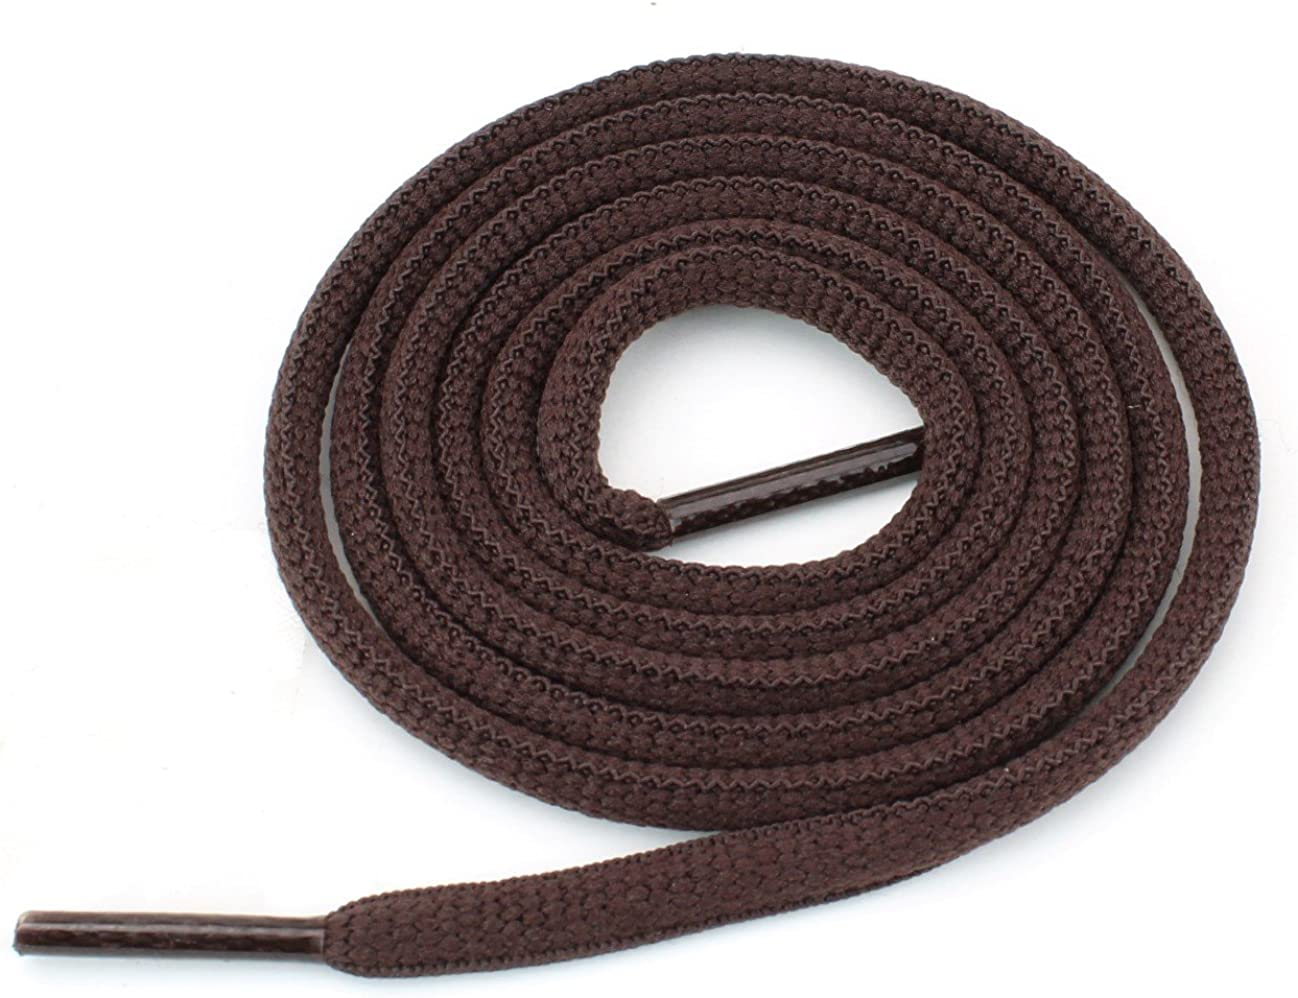 """Oval Athletic Shoelaces 1/4"""" Thick Solid Colors for All Shoes Several Lengths Strings : Clothing, Shoes & Jewelry"""